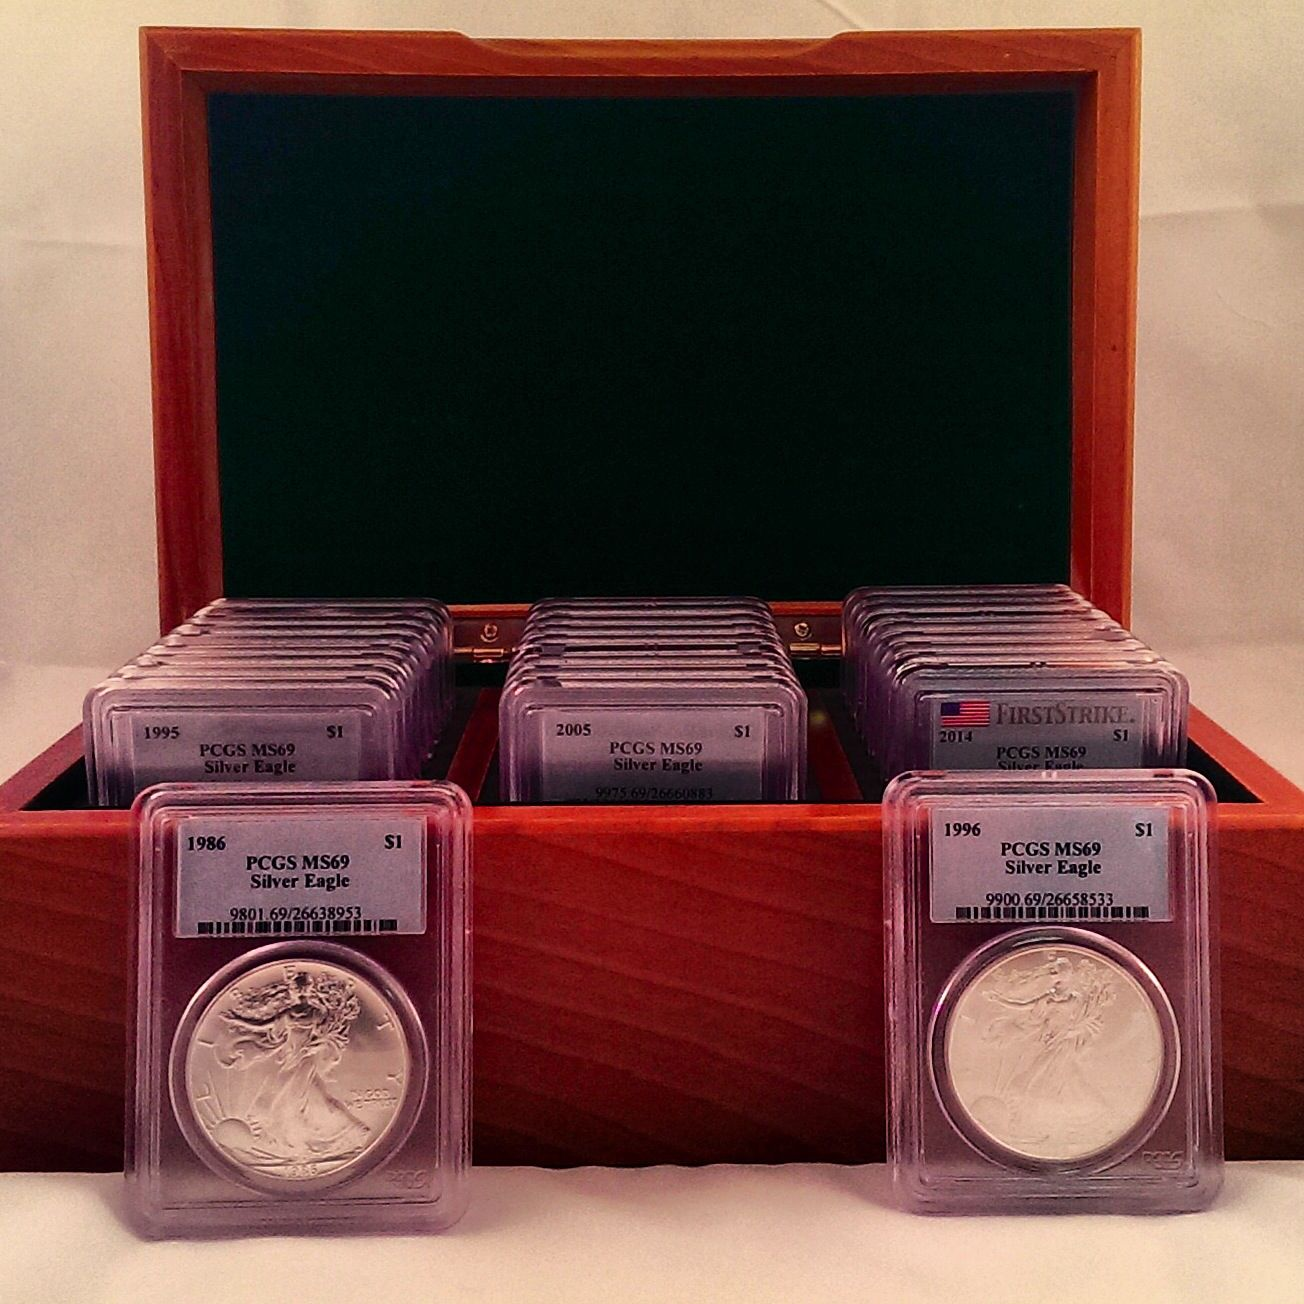 Complete American Silver Eagle set PCGS MS69! Comes in this beautiful wood box! Check it out on our eBay store, bullionsharkllc. #bullionshark